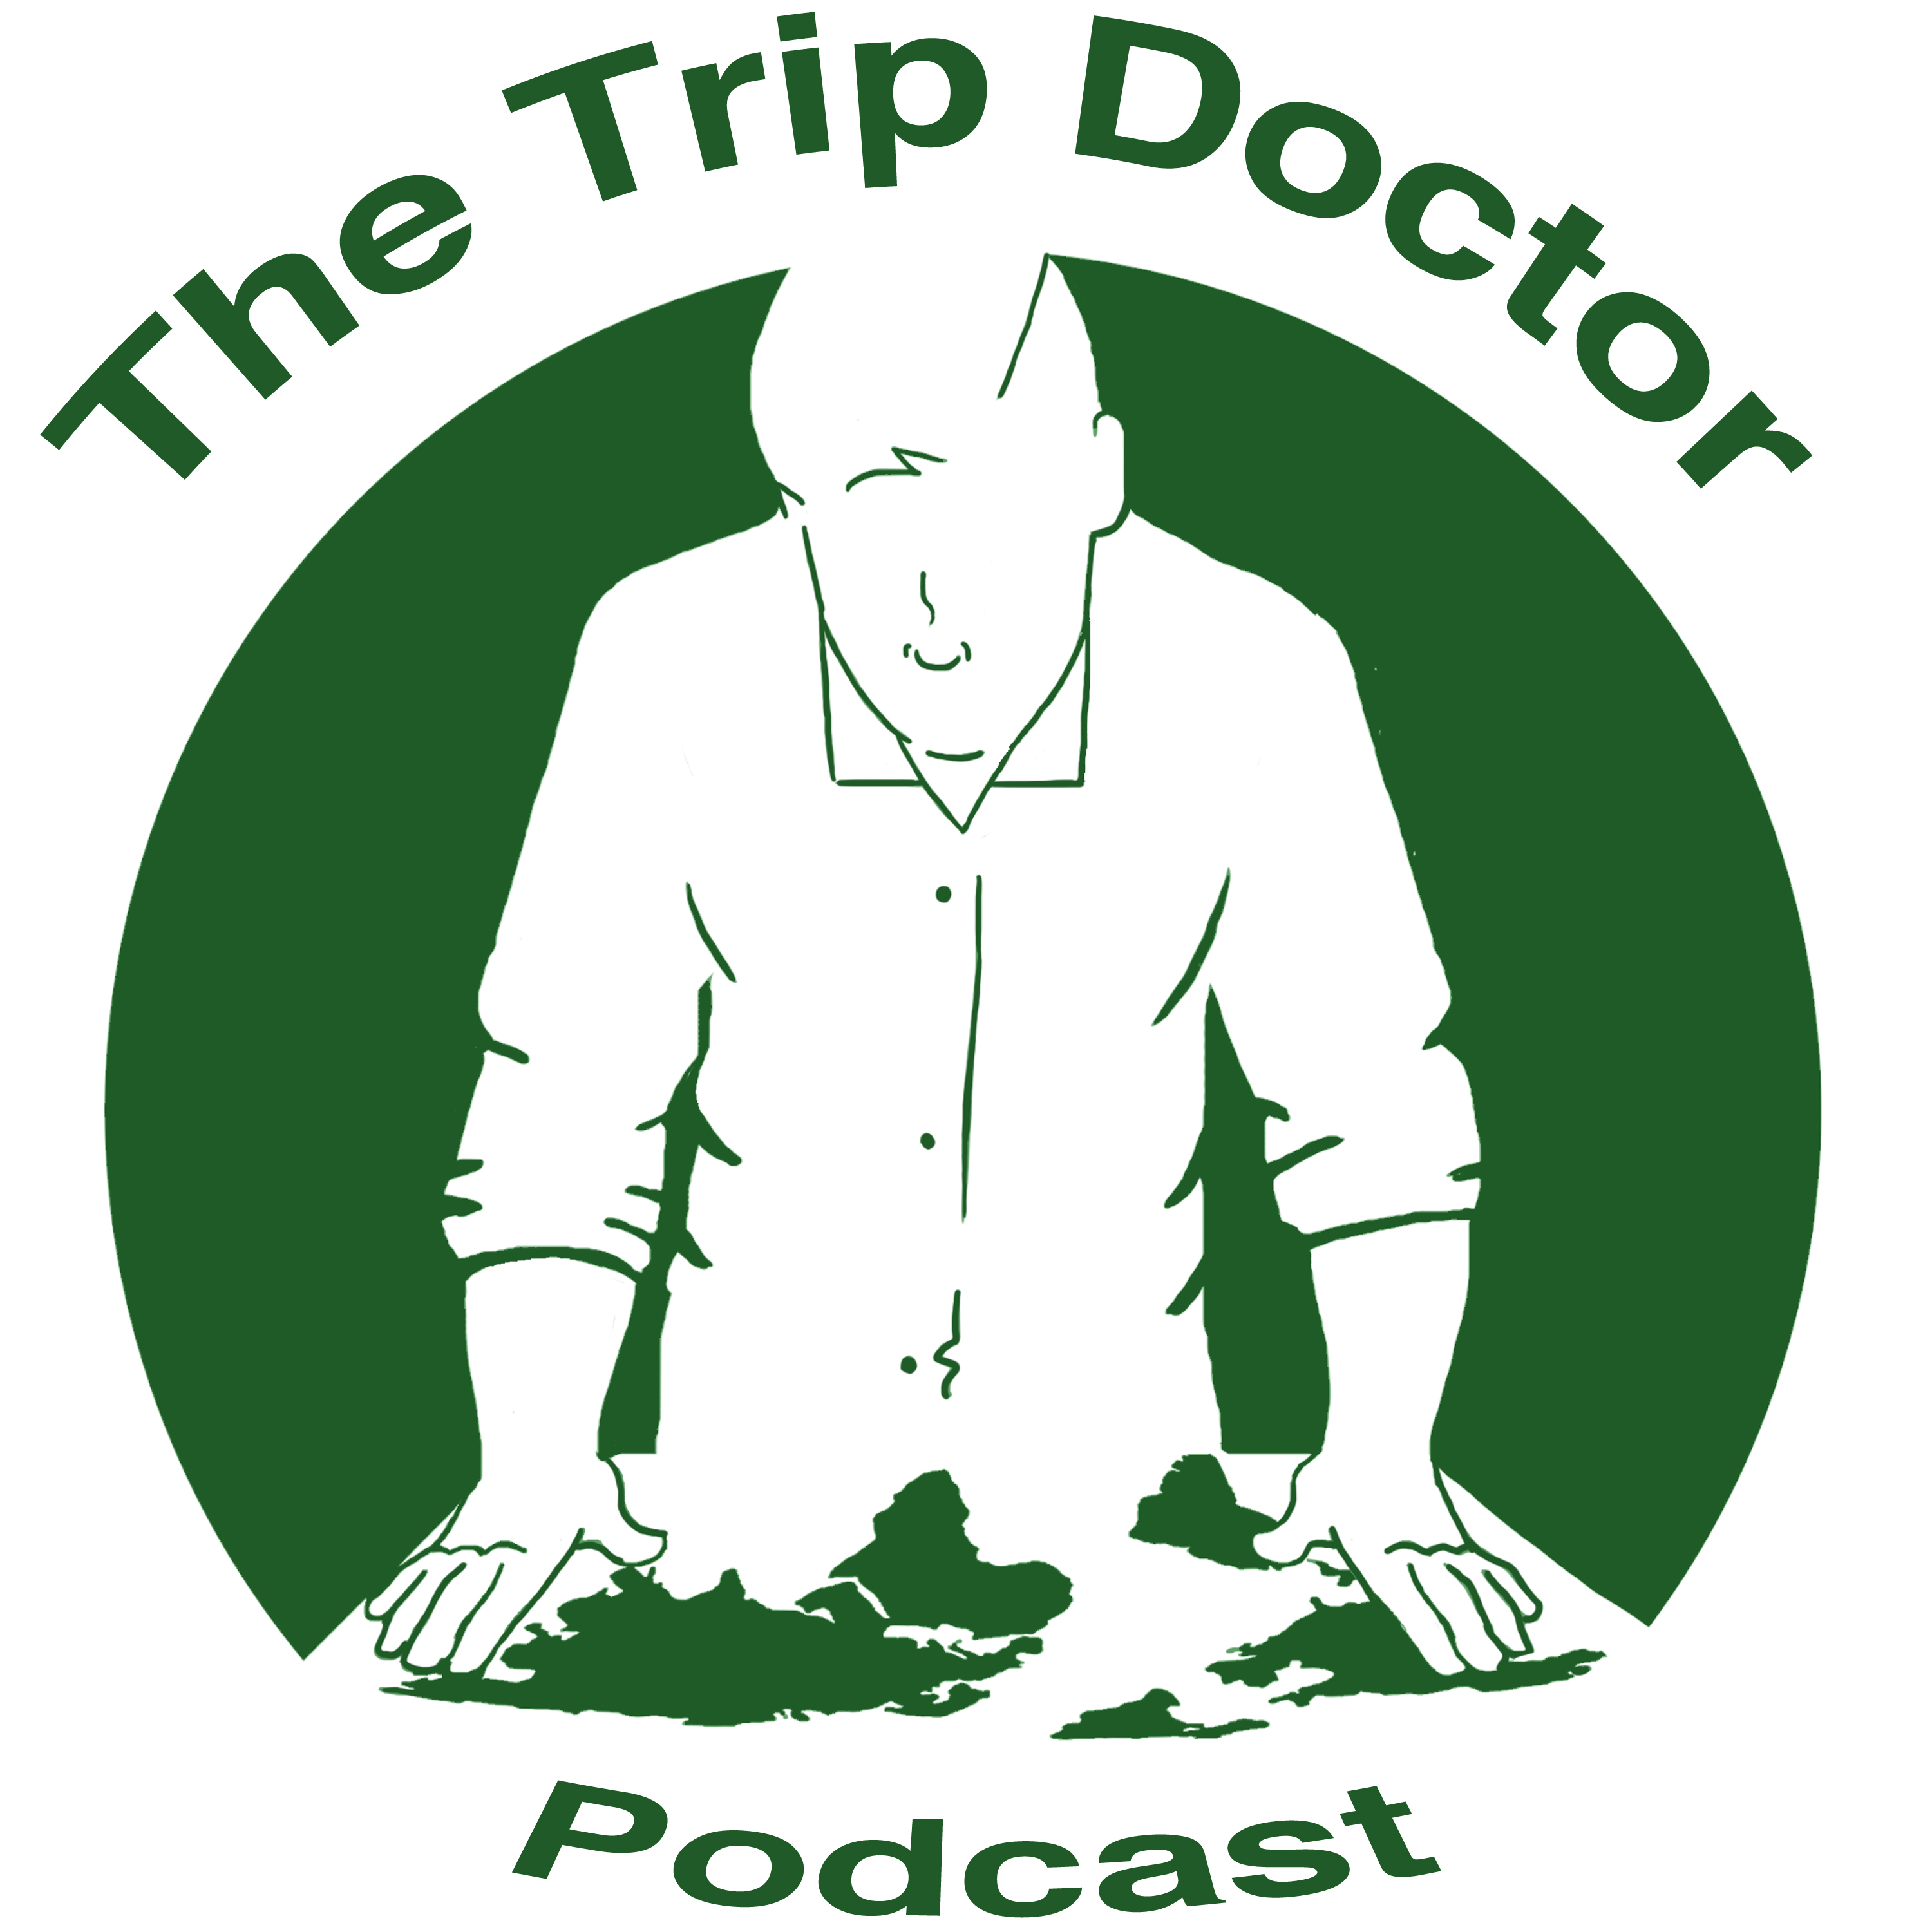 The Trip Doctor Podcast